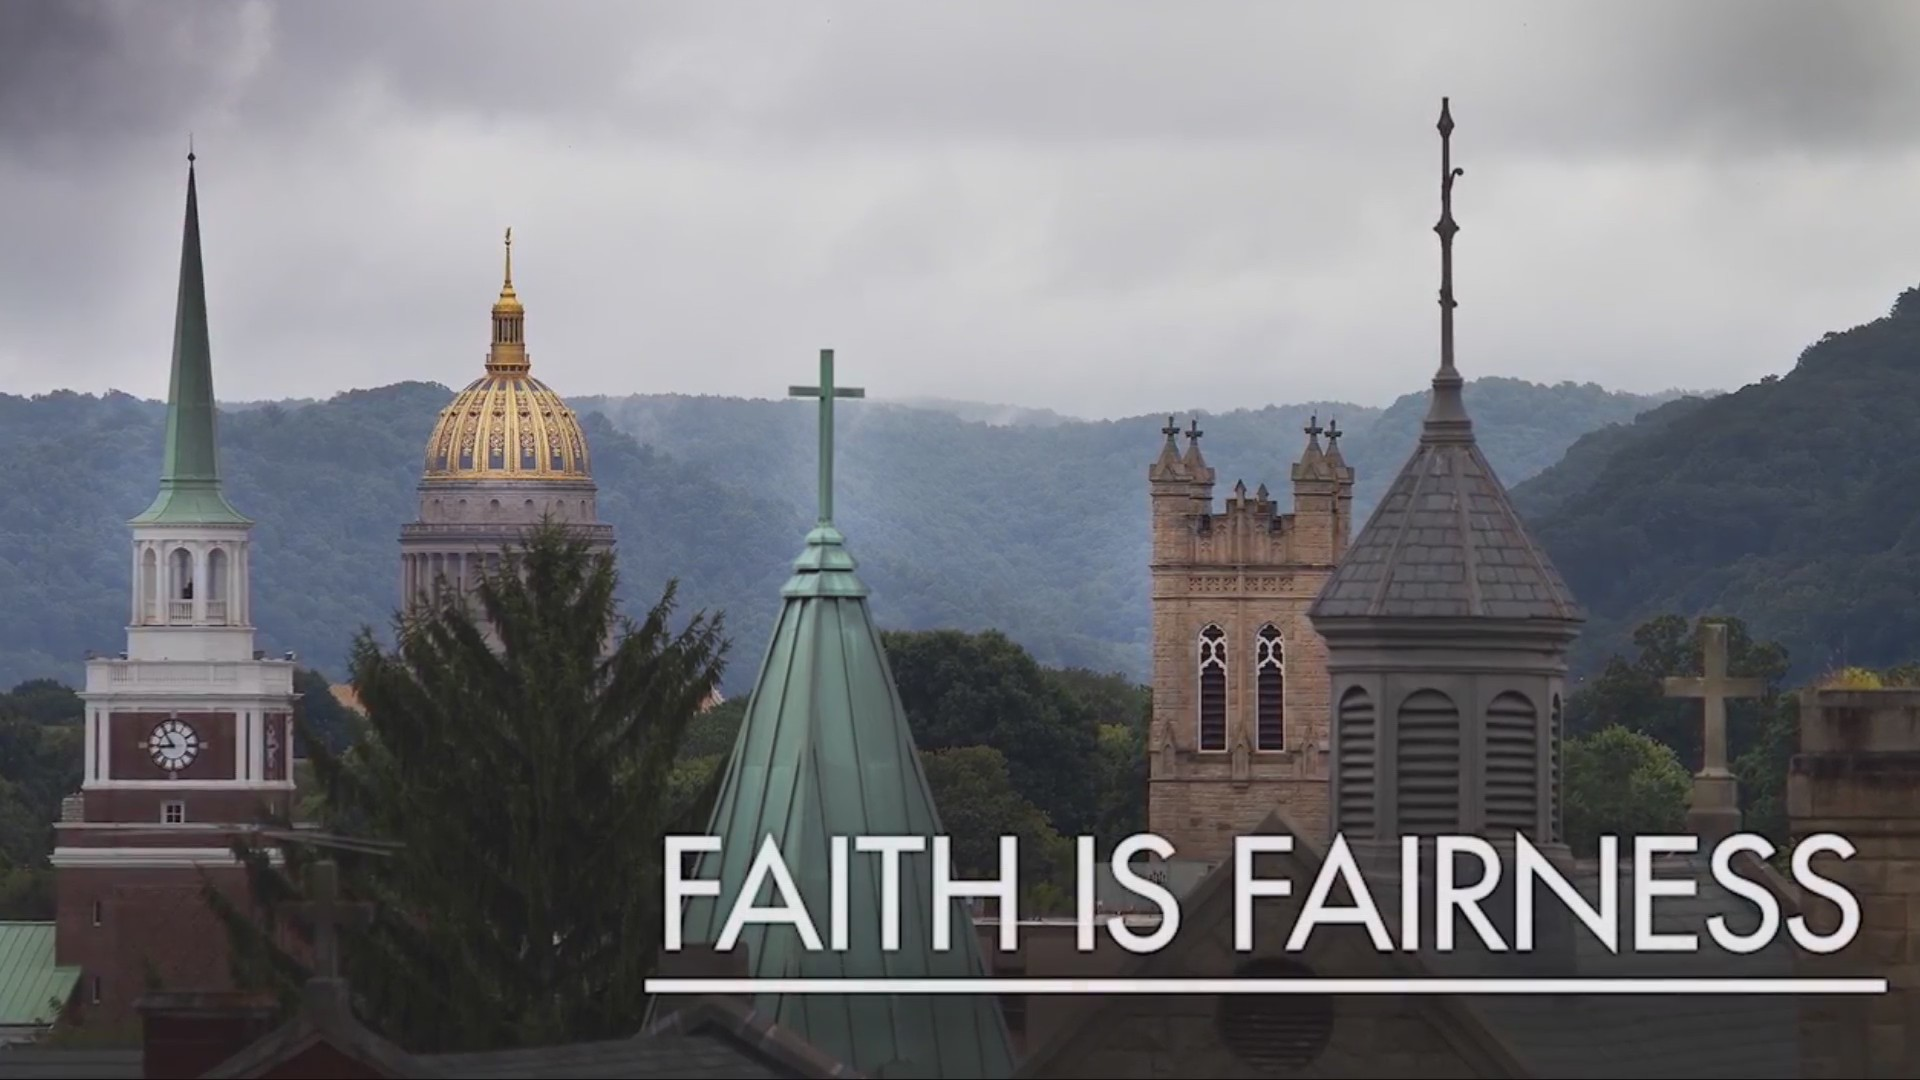 Video of WV religious leaders advocating for LQBT nondiscrimination aimed to spark conversation